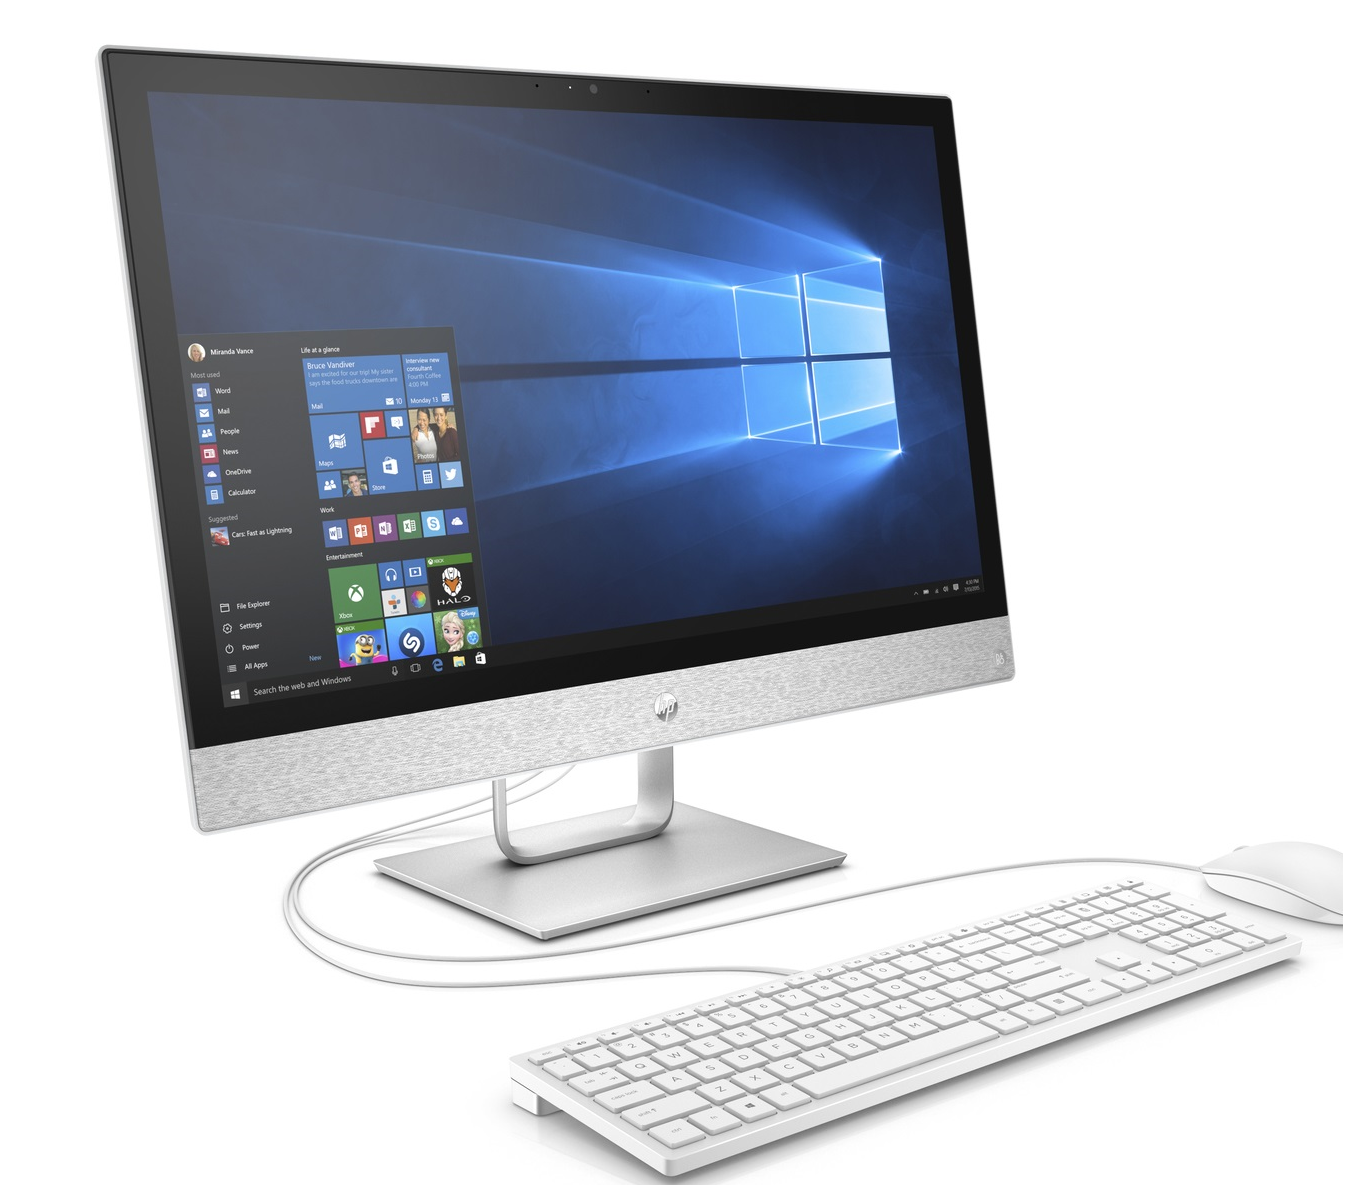 HP Renew 2XC70EA HP 24-r046nz AiO, Core i5-7400T, 23.8, 8GB, 1TB, DVDRW, WiFi, WC, Win 10